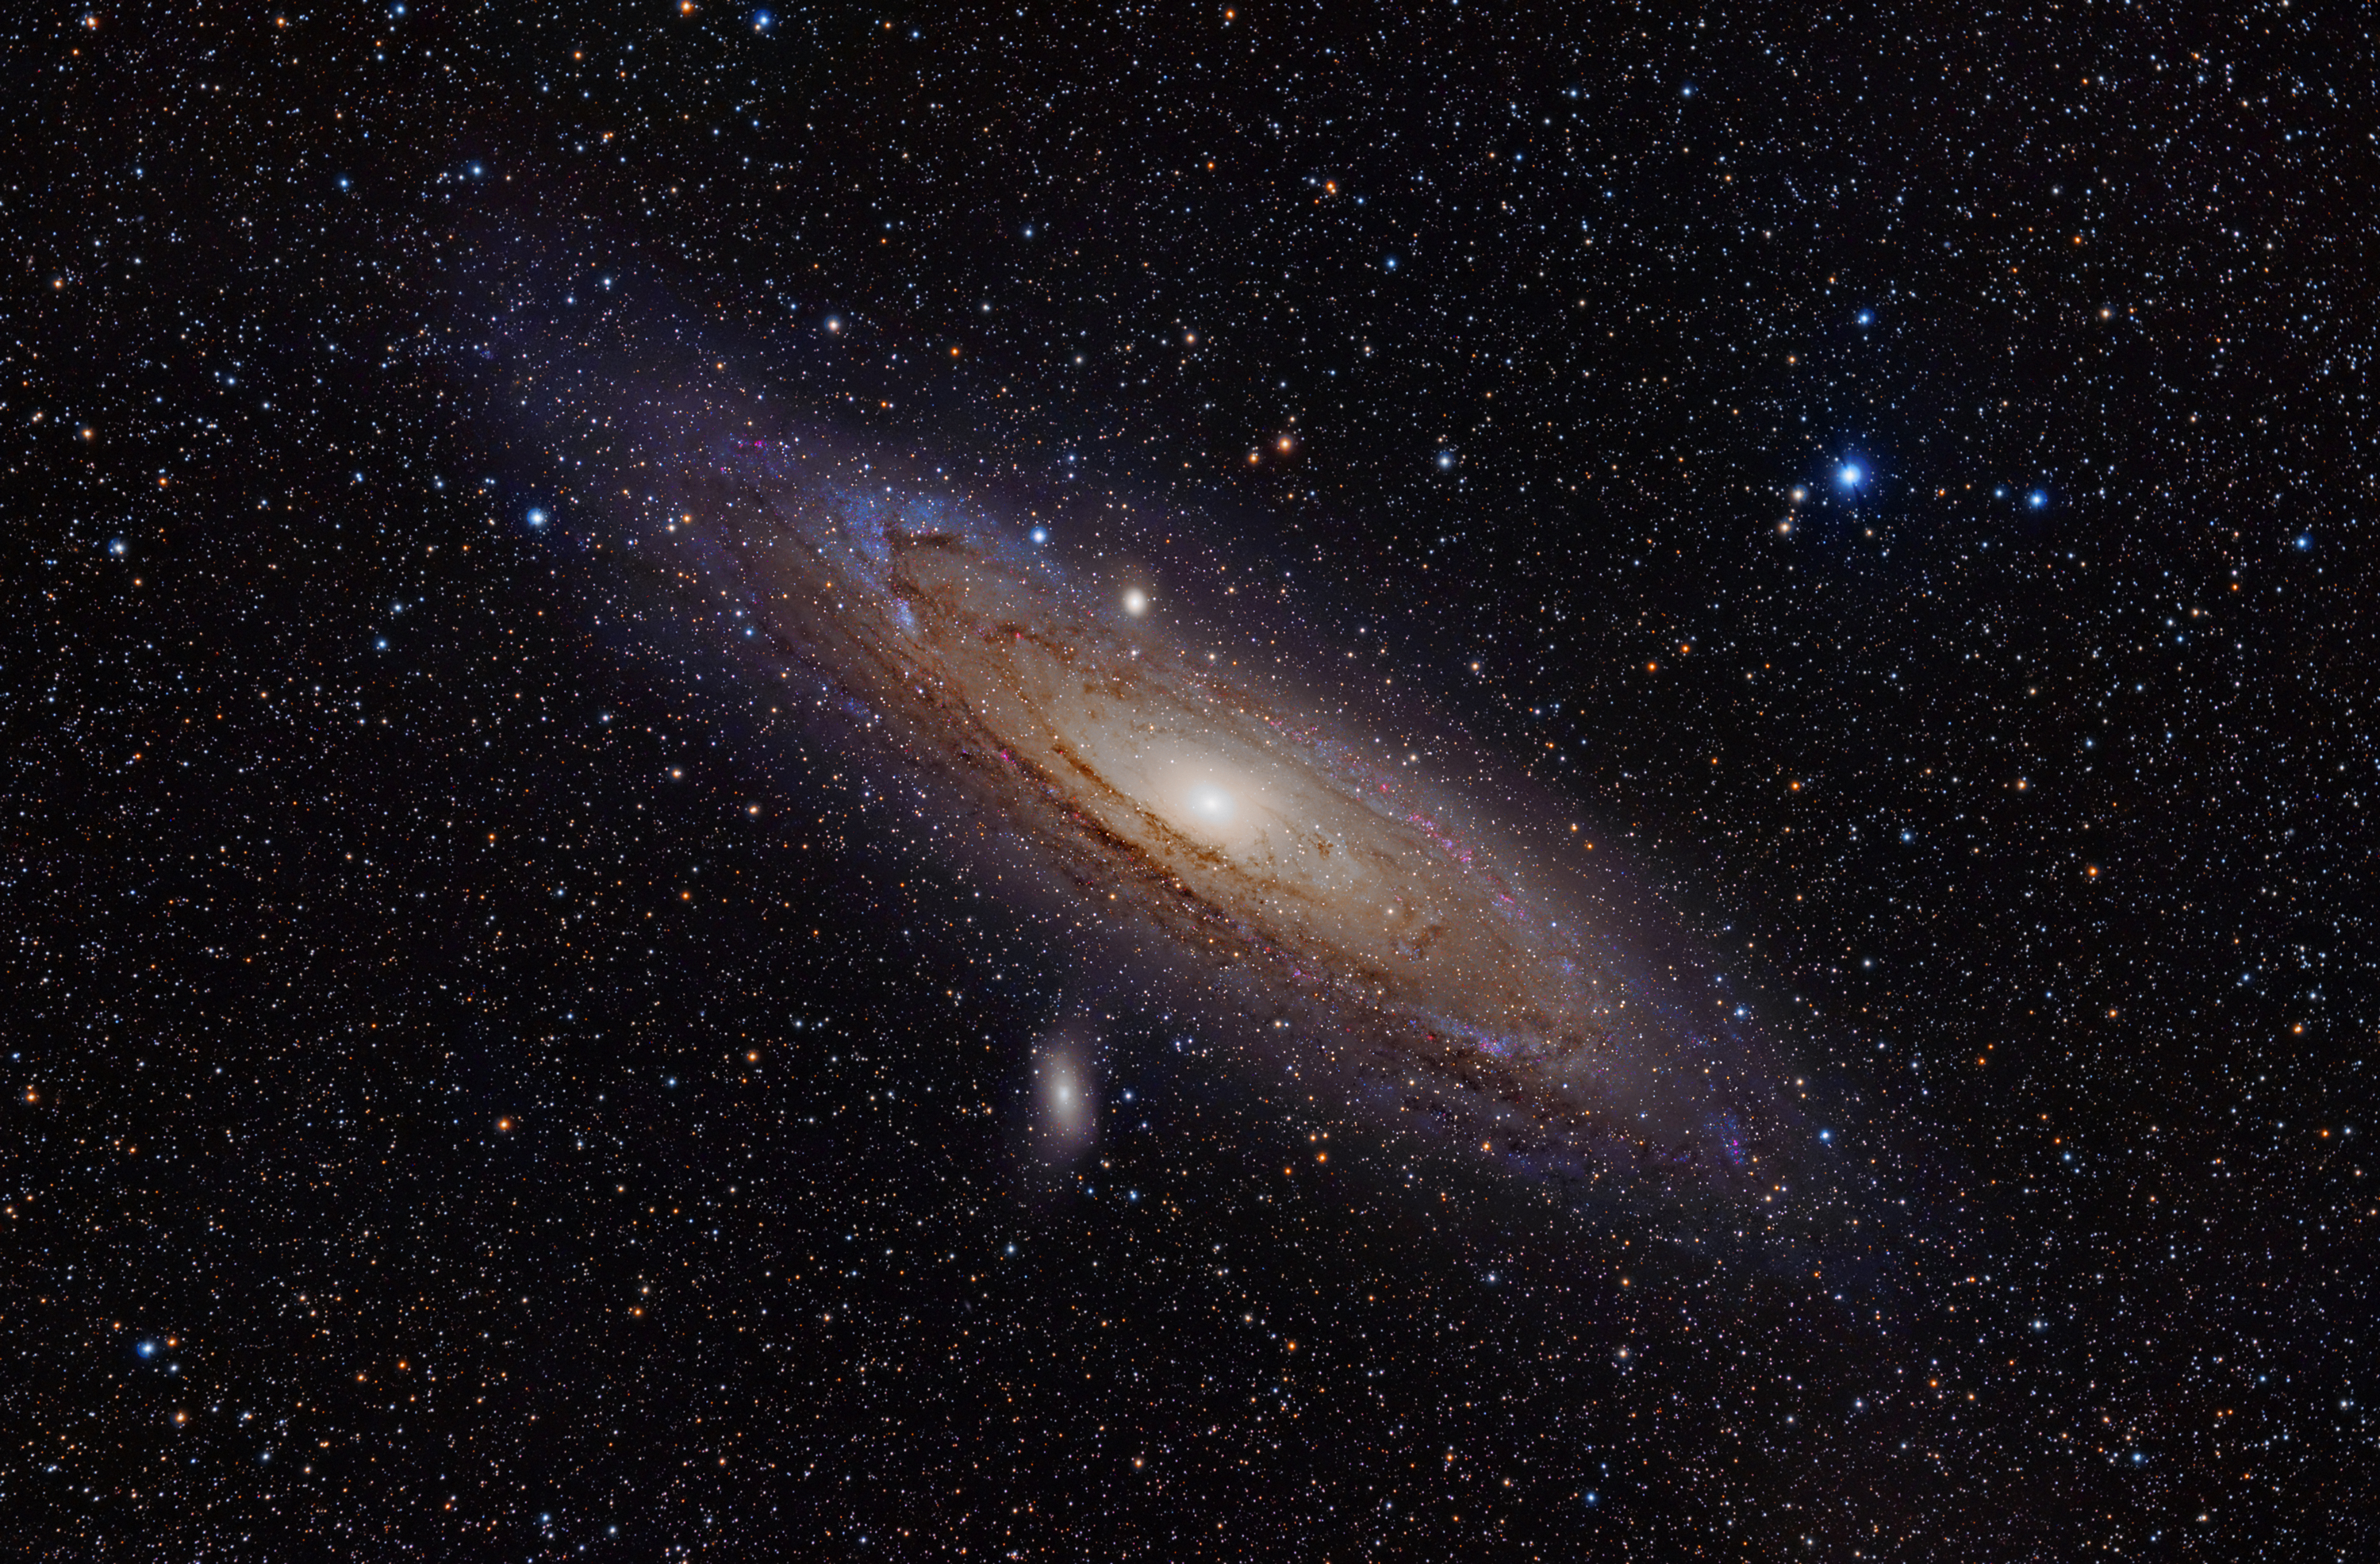 The Andromeda Galaxy - an elliptical galaxy, tilted on its side on a black background. Purple and red swirls of dust are on the outer edges of the galaxy. The galactic centre is a murky white.